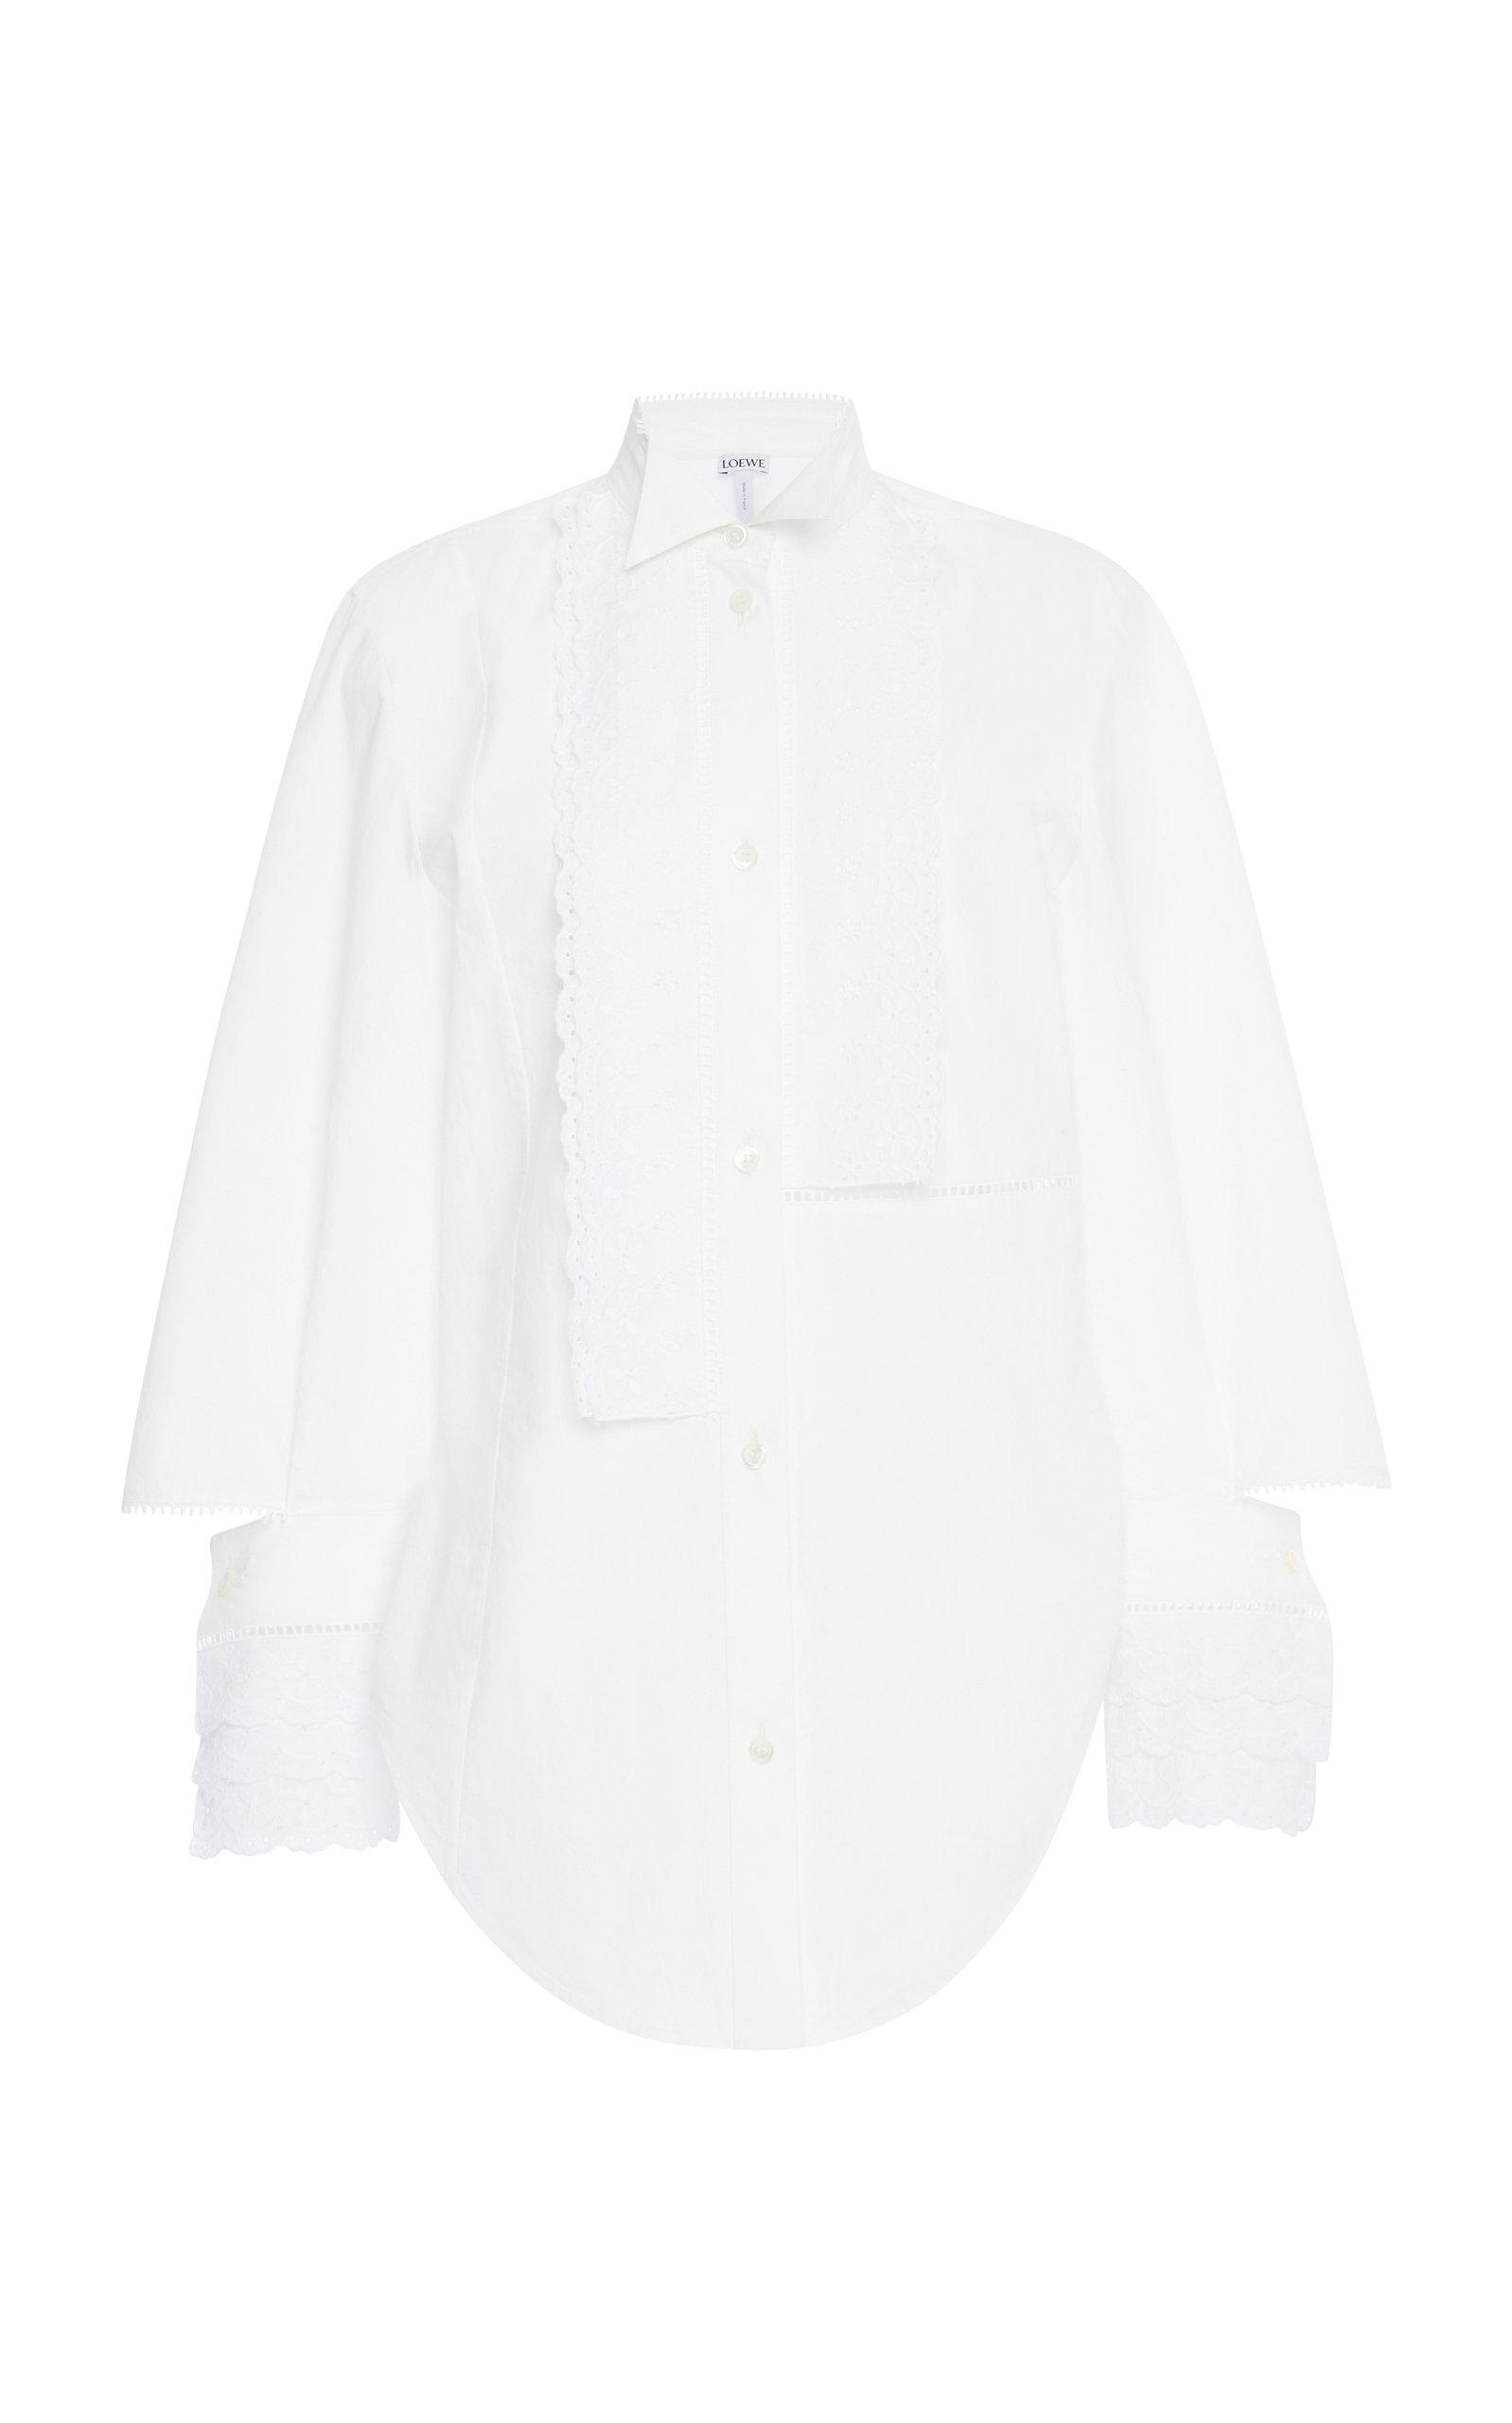 42fd84d54a5 Lyst - Loewe Broderie Anglaise Ruffle Poplin Shirt in White